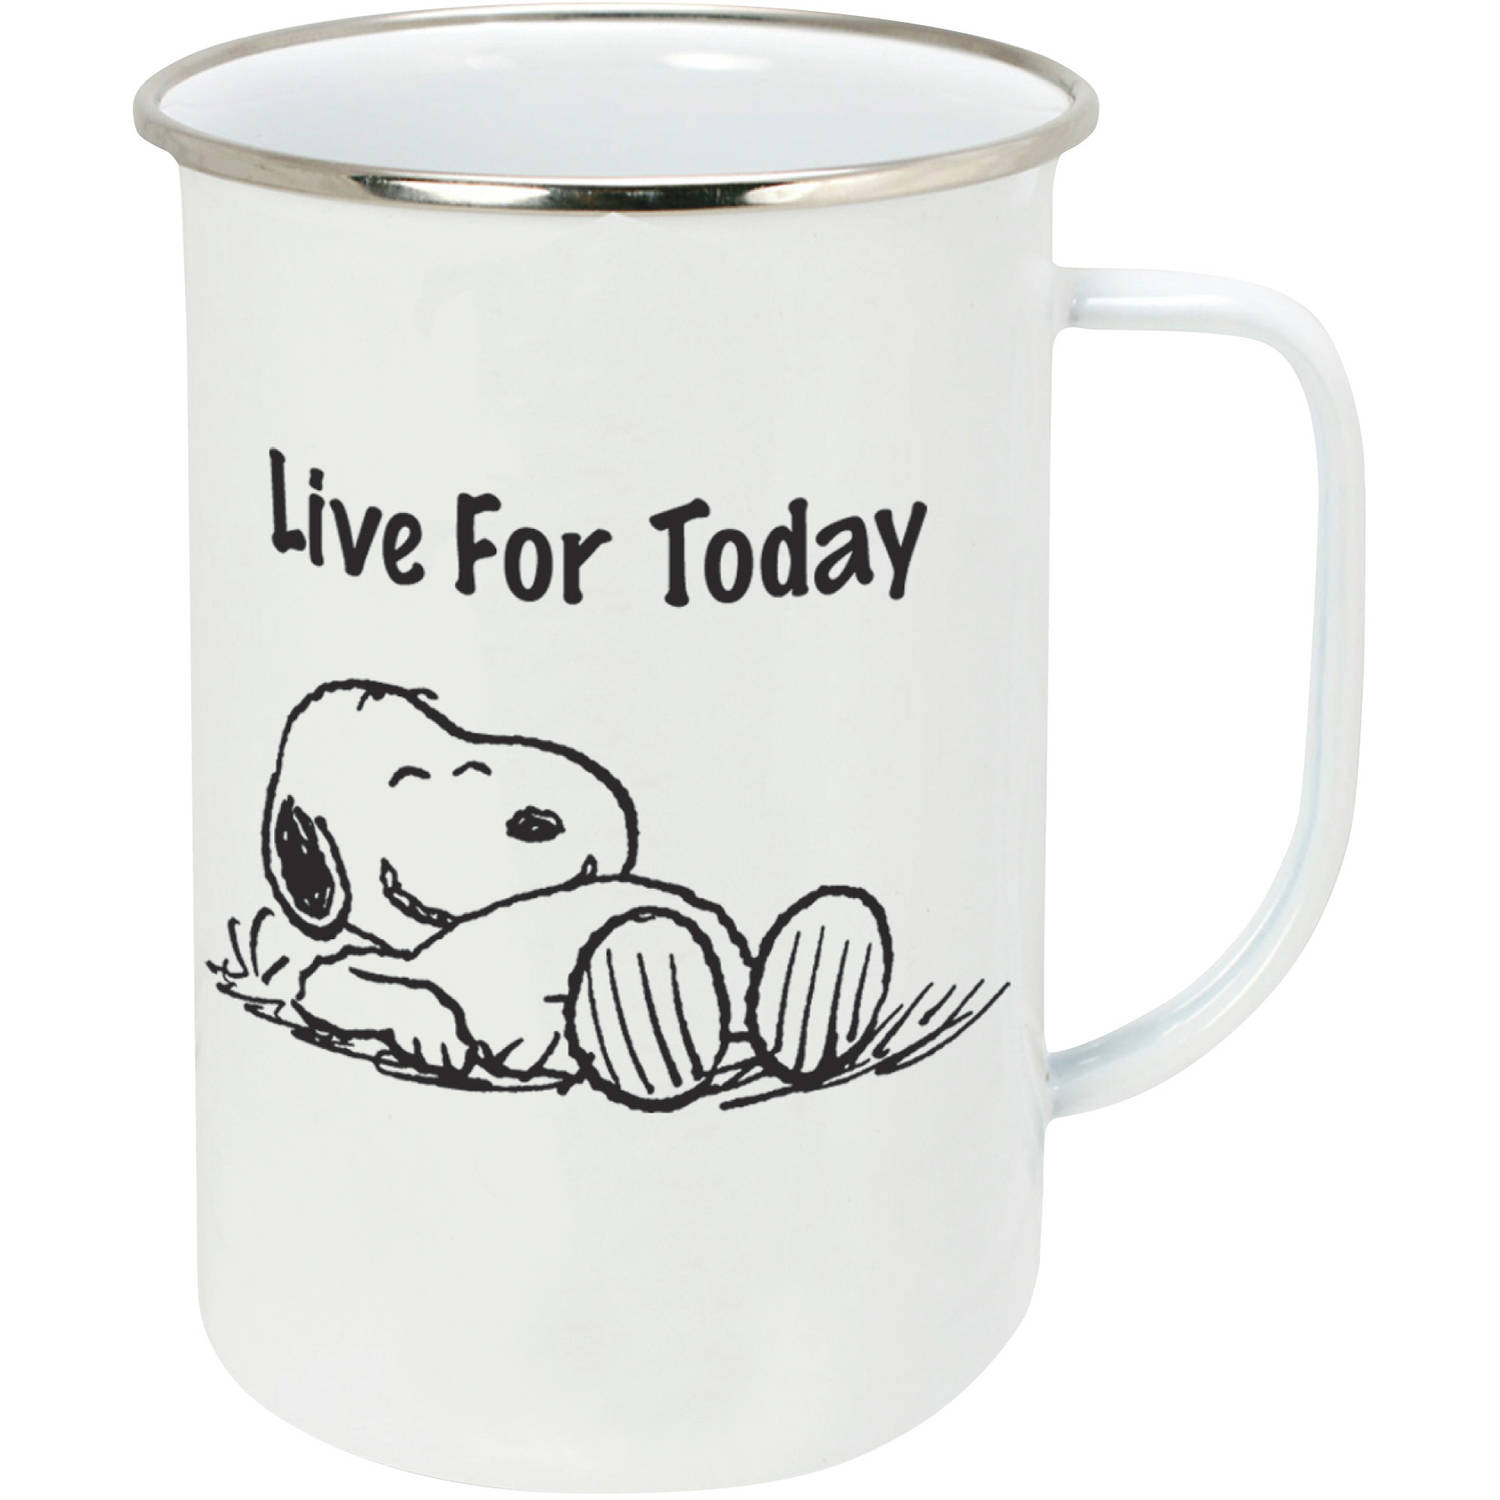 Peanuts Live For Today 20-Ounce Enamelware Mug